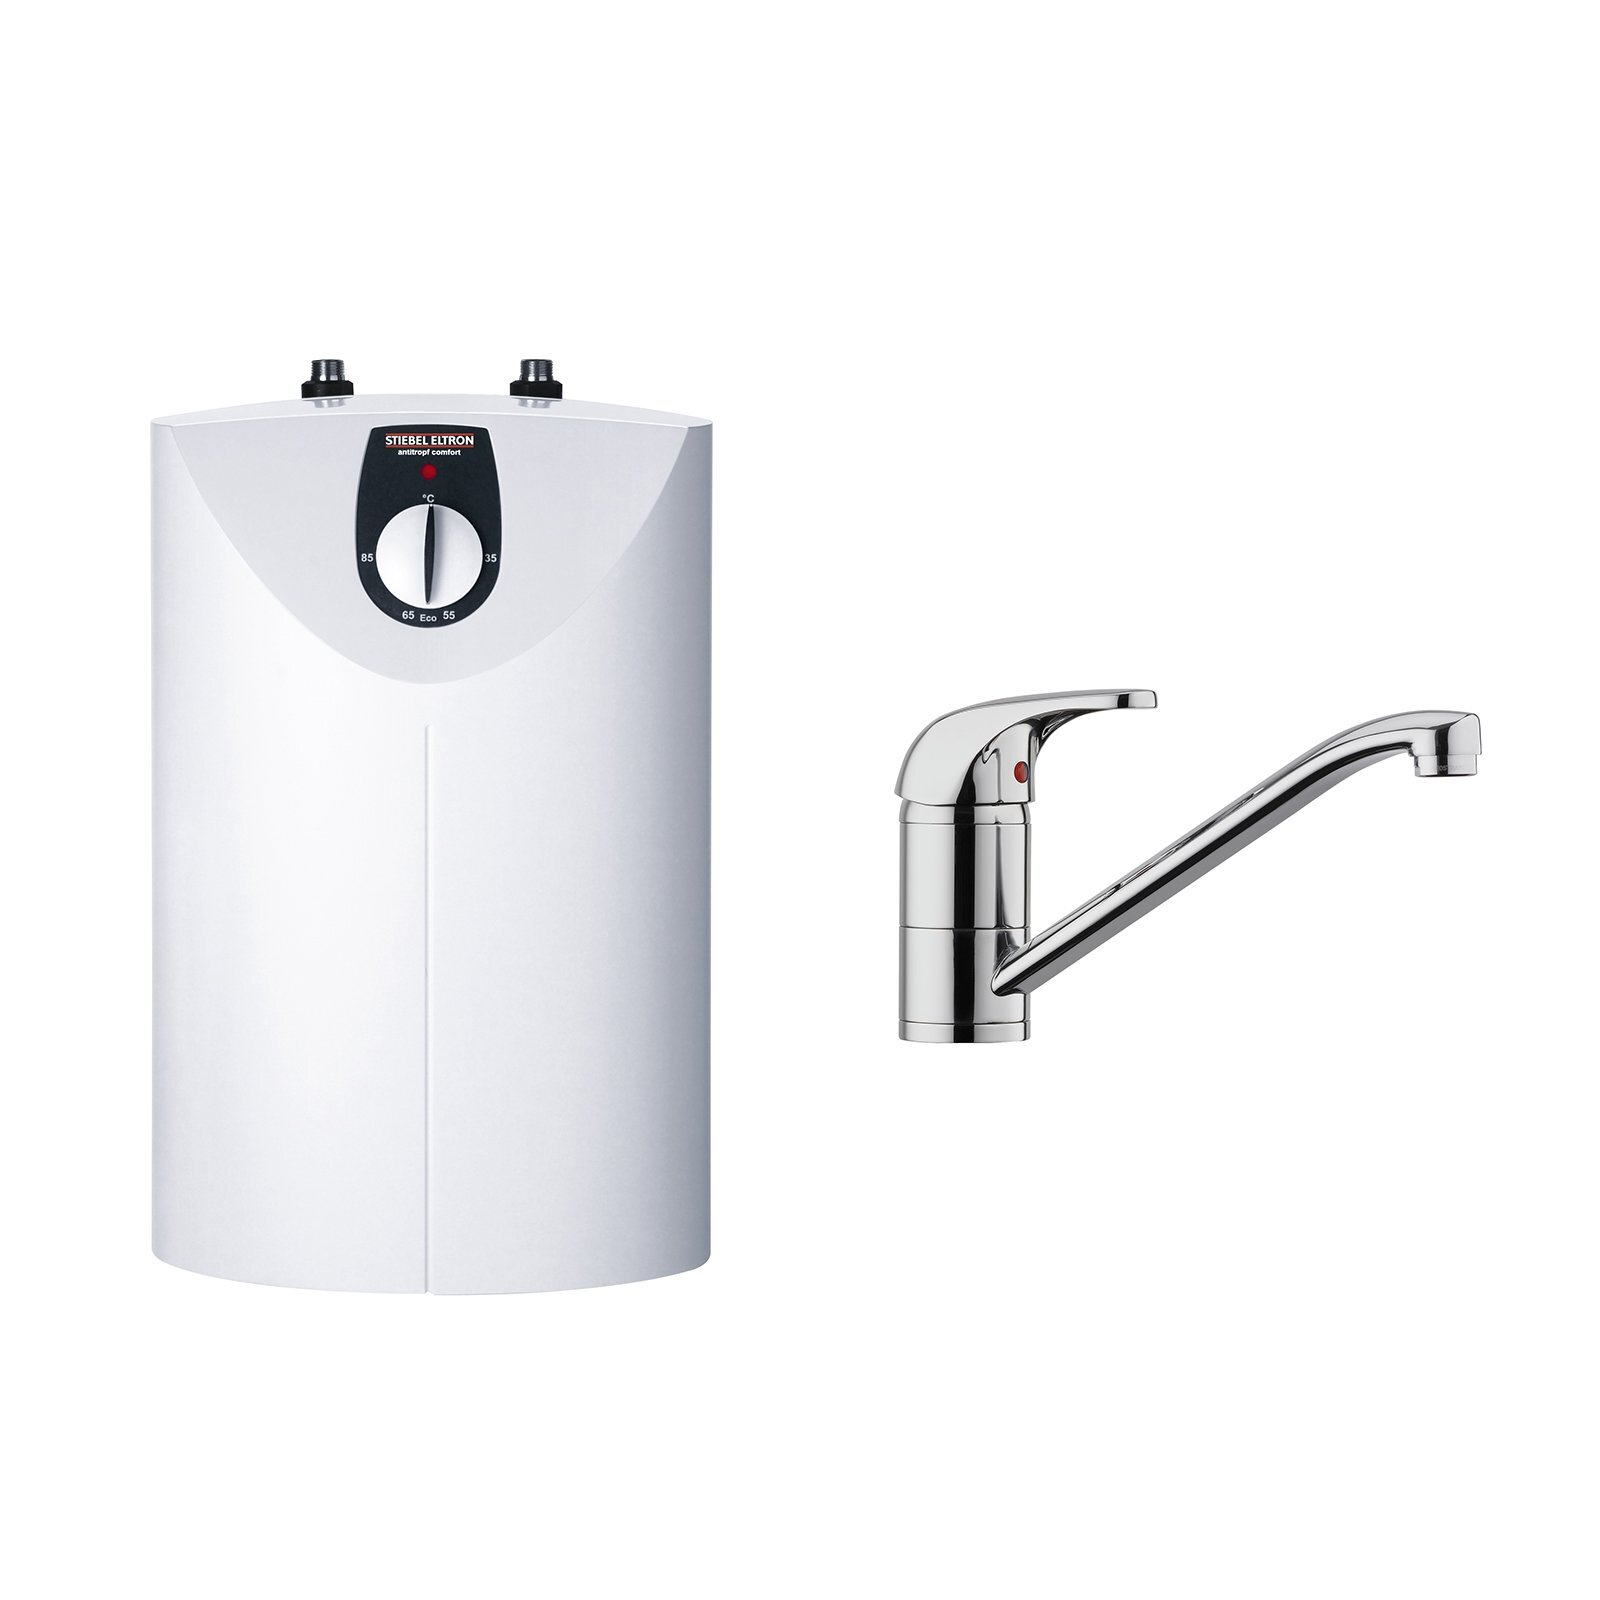 STIEBEL ELTRON SNU 5 Open Vented Water Heater With MES Tap